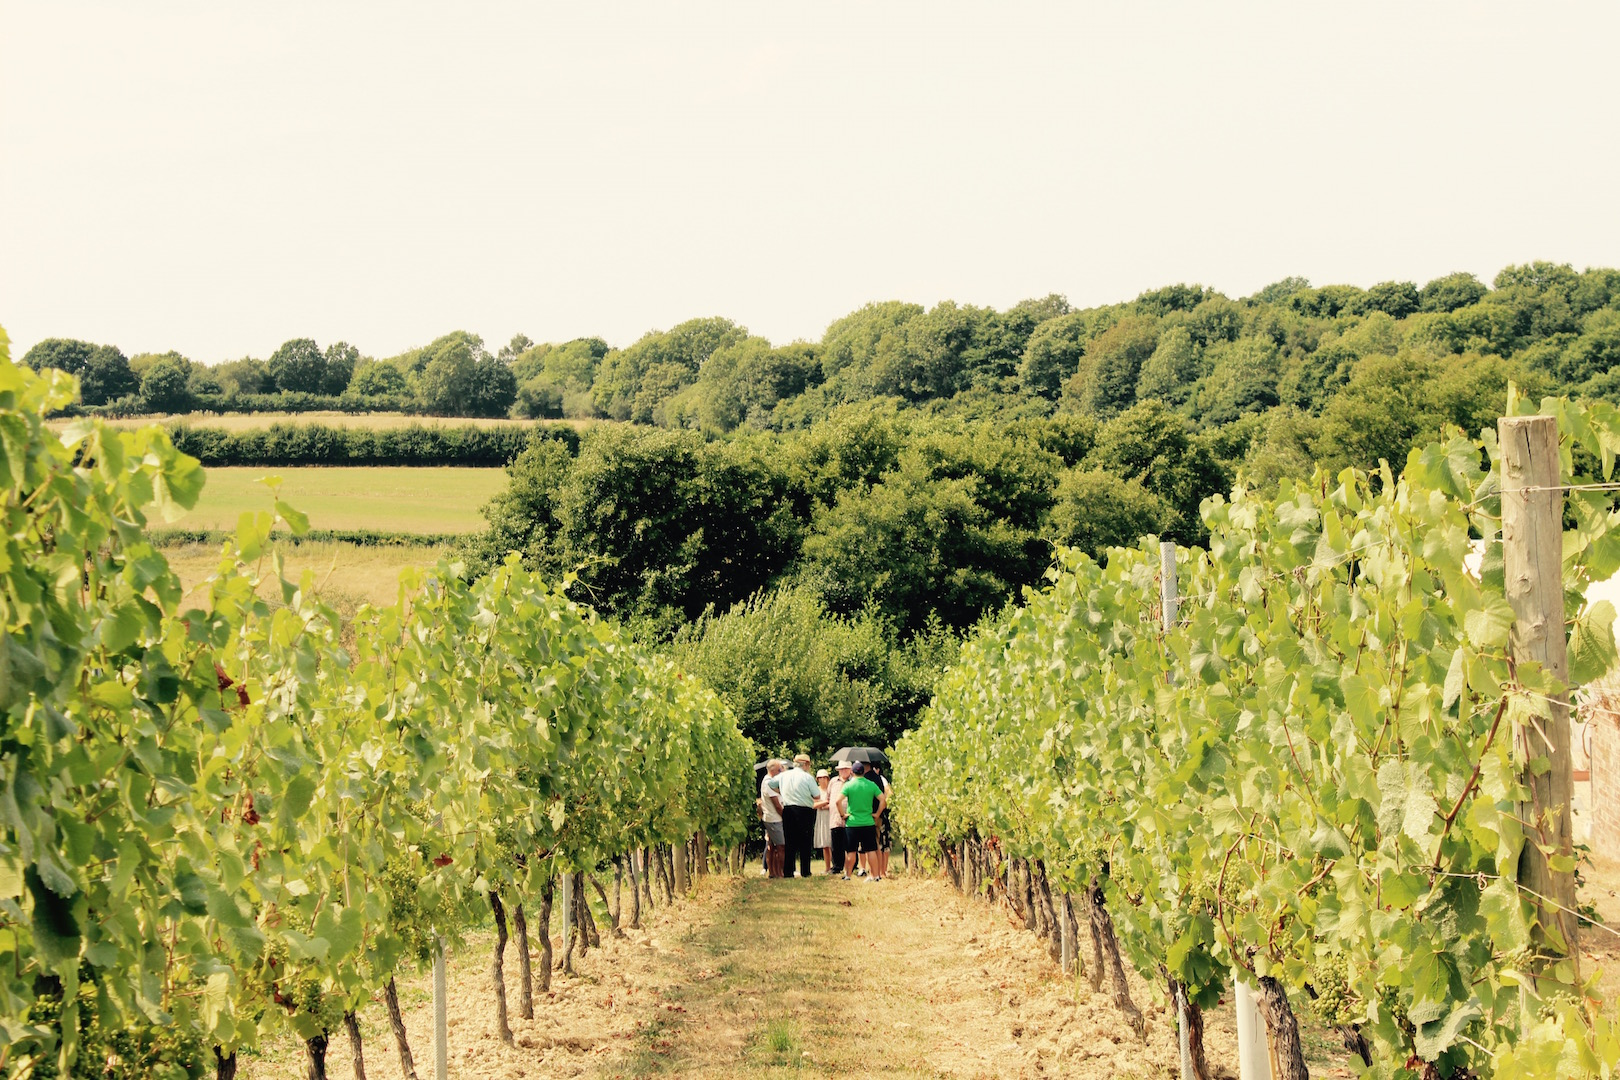 Walking amongst the vines at Bluebell Vineyard Estate